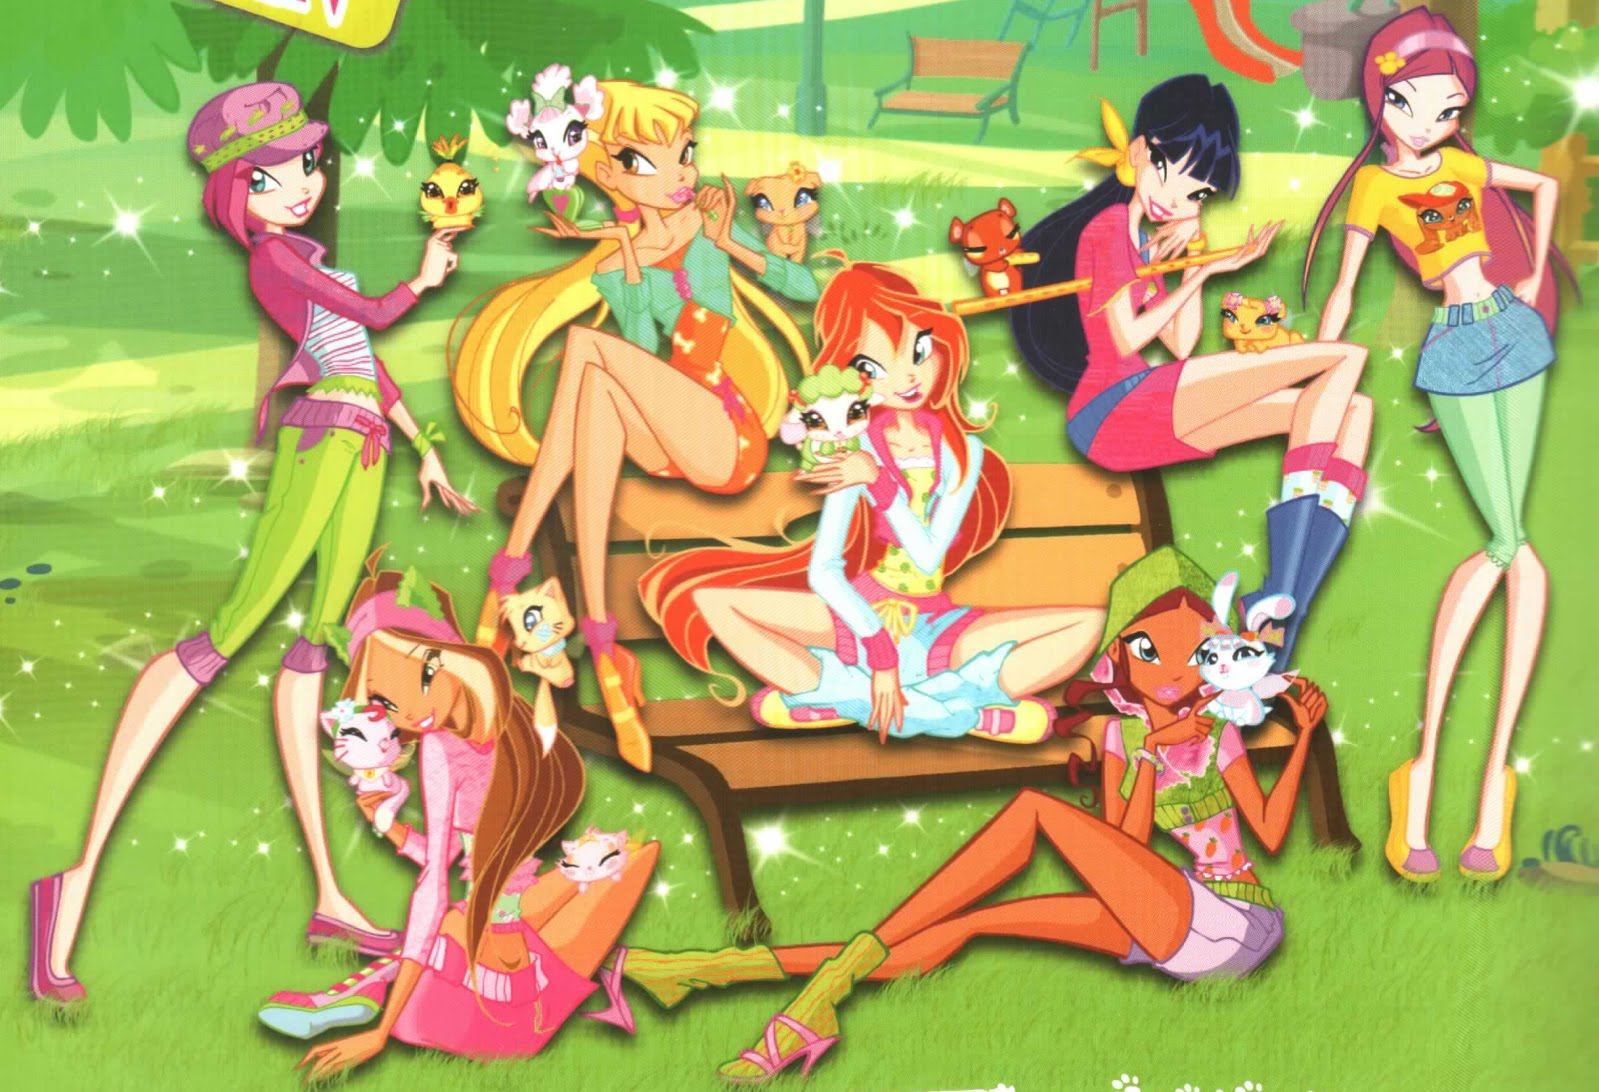 Foto Te Winx http://winx4life.blogspot.com/2010/09/new-winx-group-love-and-pet-image-with.html